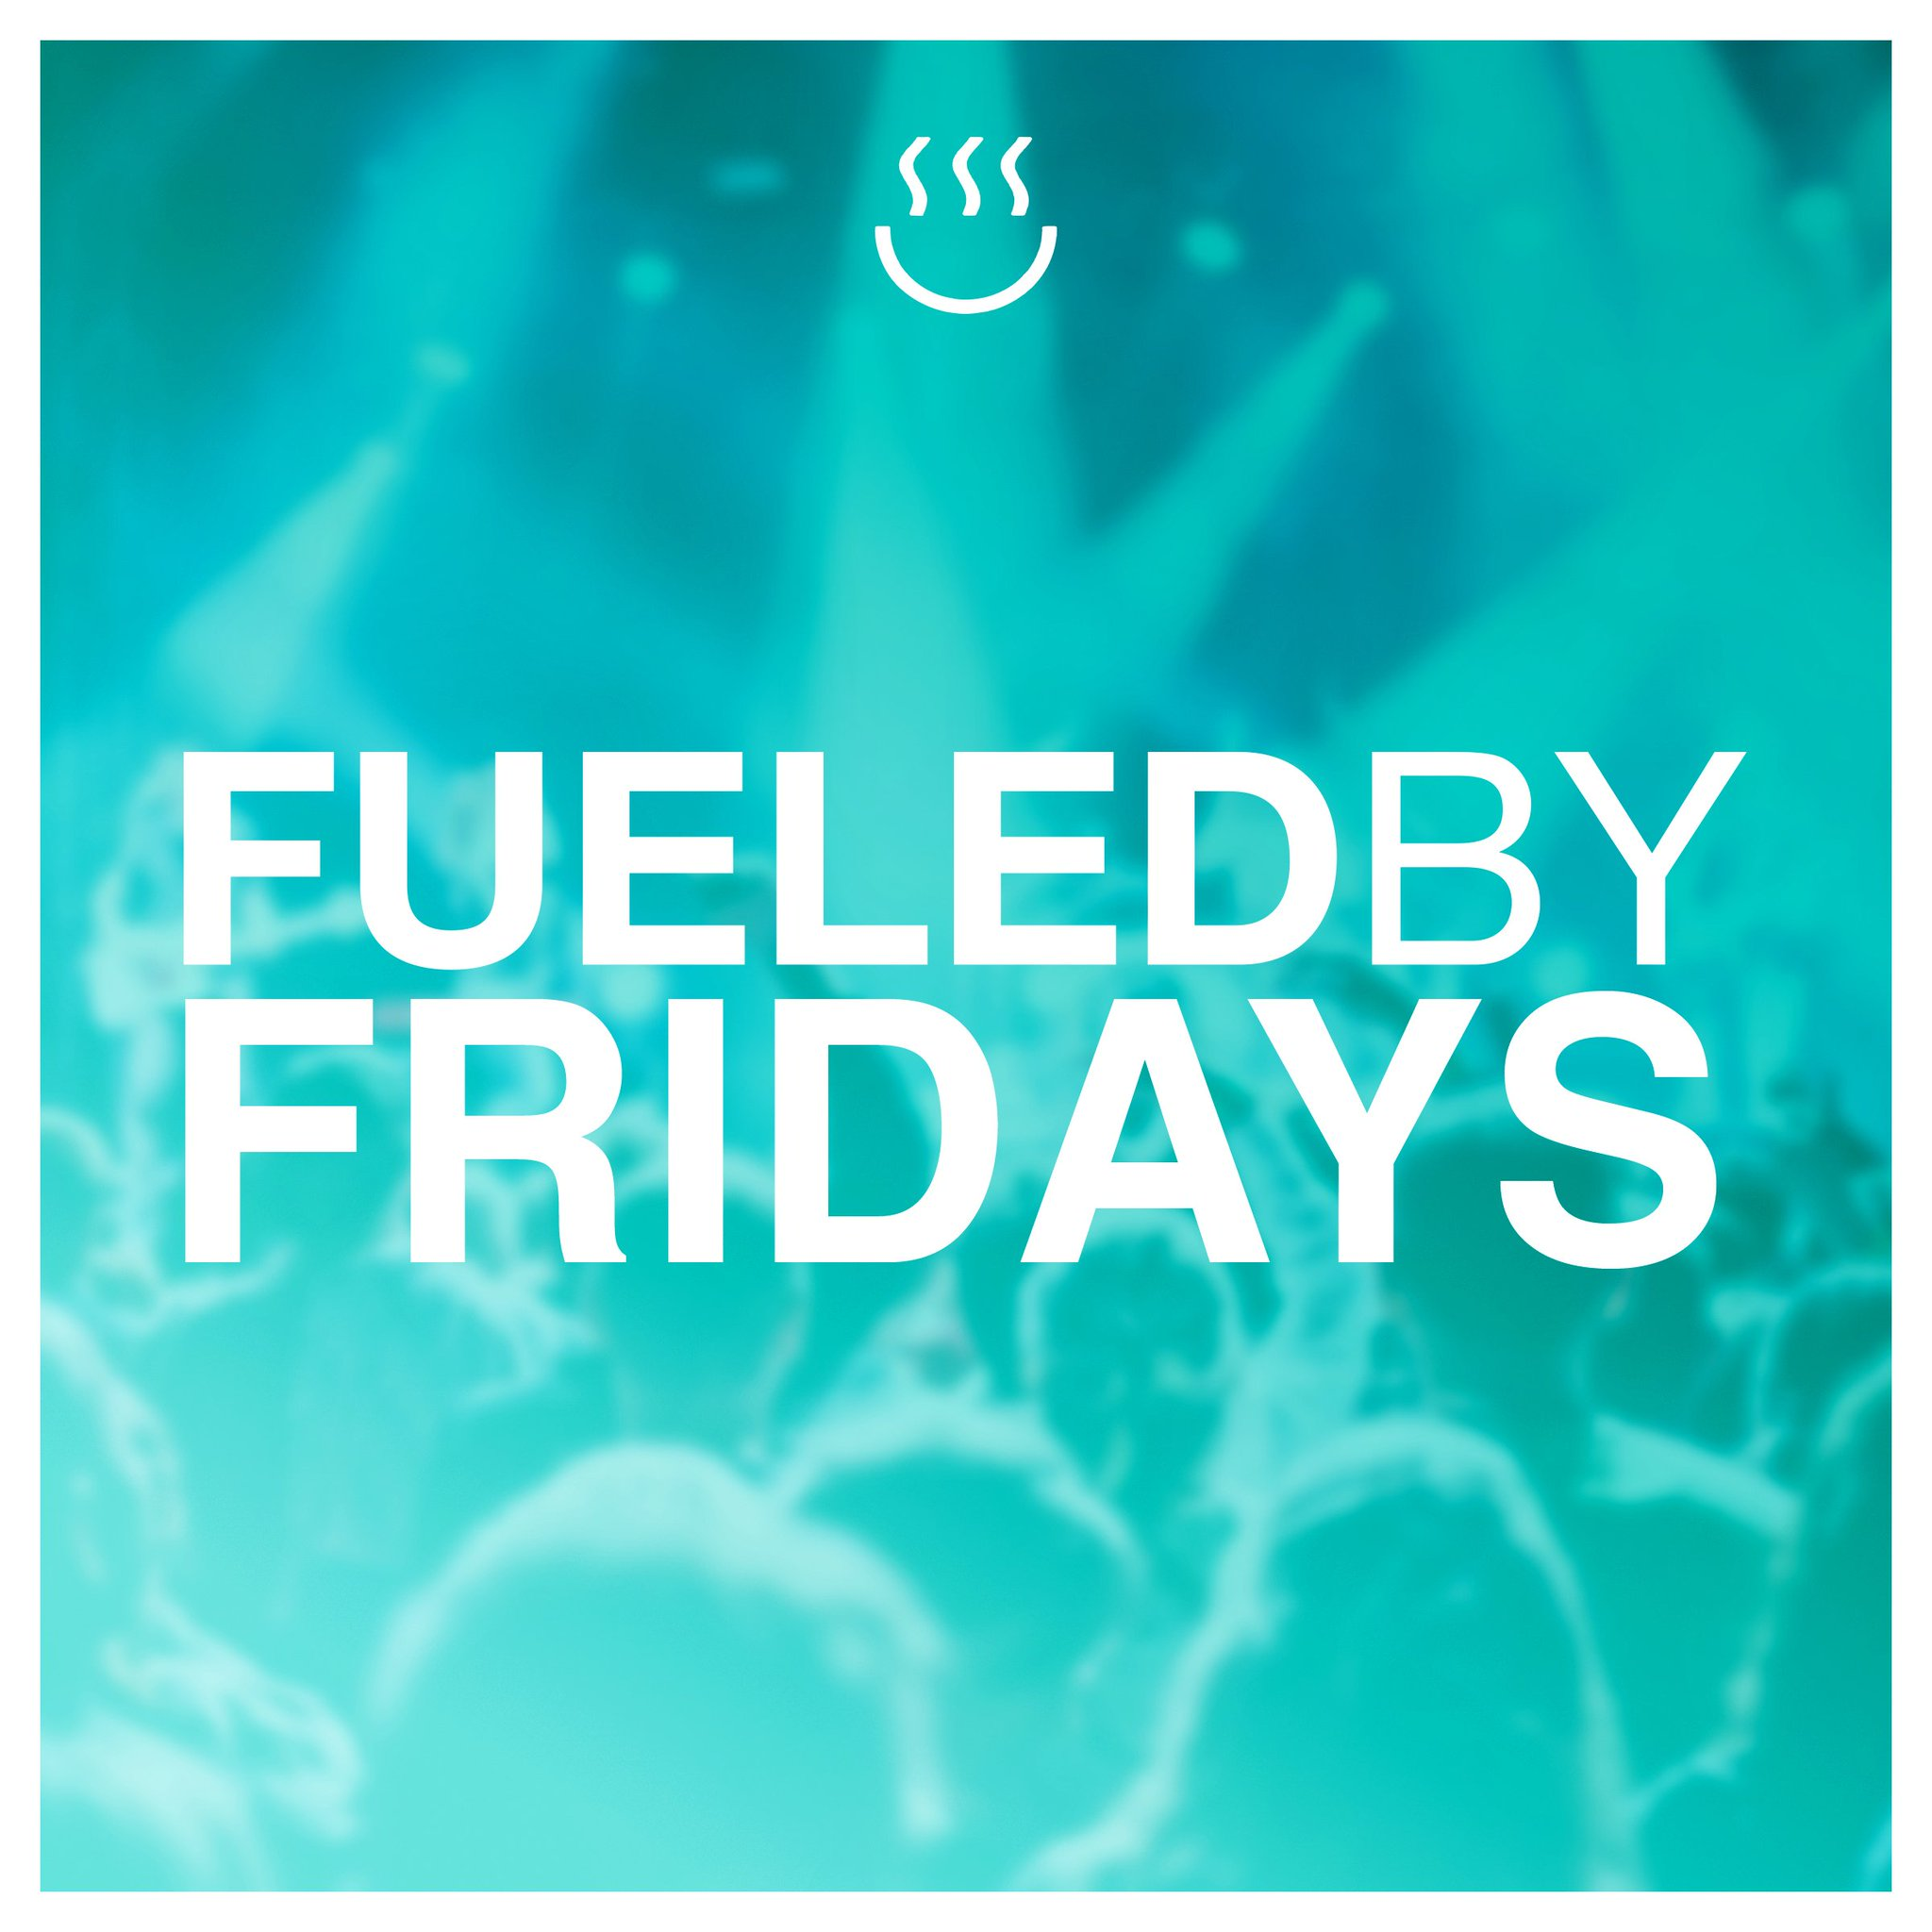 Get the party started this weekend with our weekly #FUELEDBYFRIDAYS playlist! Listen now at: https://t.co/sQao4ibFBo https://t.co/JBMOvpHFNi